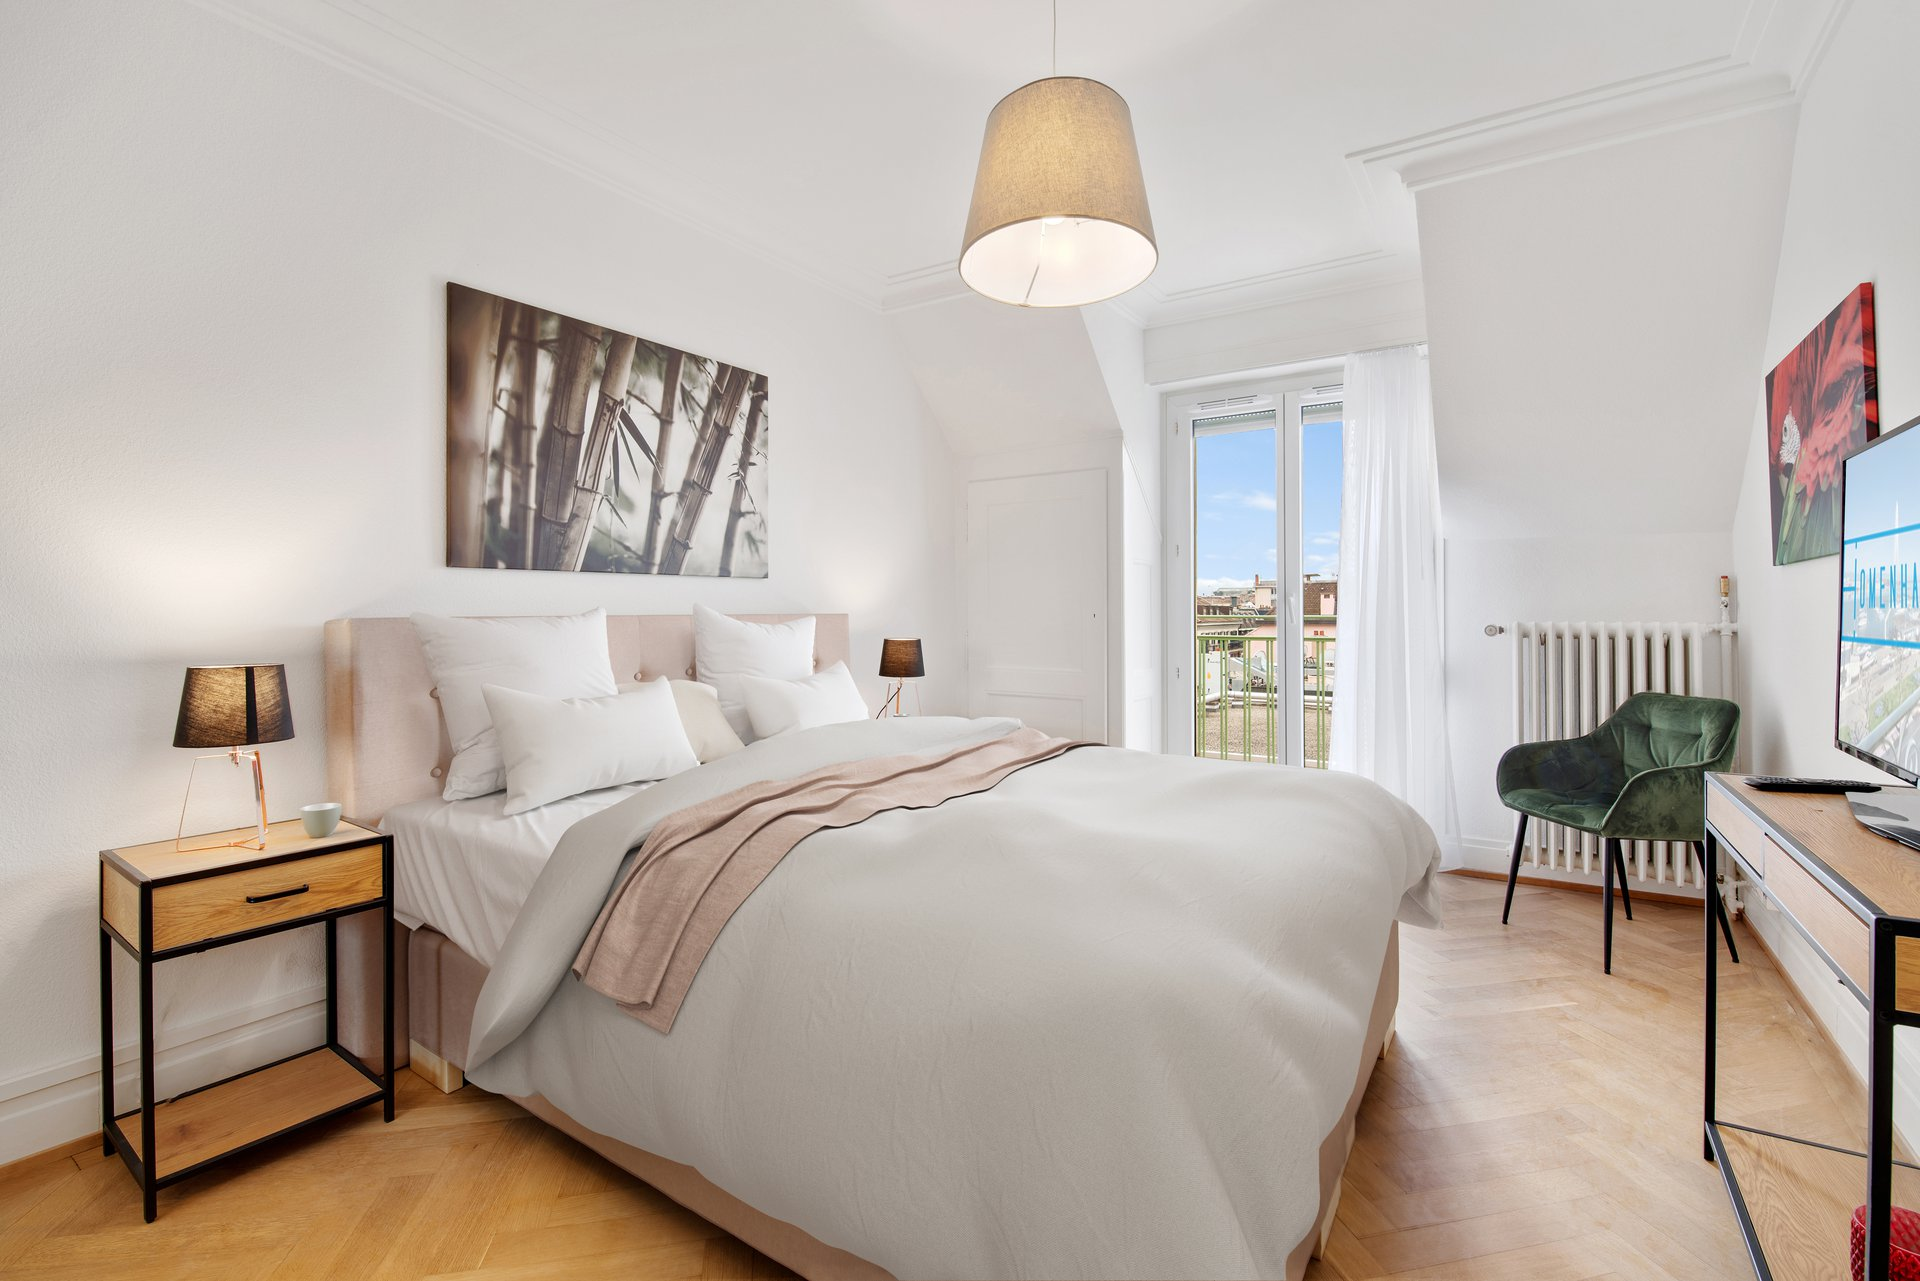 Located in one of the historical buildings of the Eaux-vives district, this comfortable one bedroom offering peace and tranqu